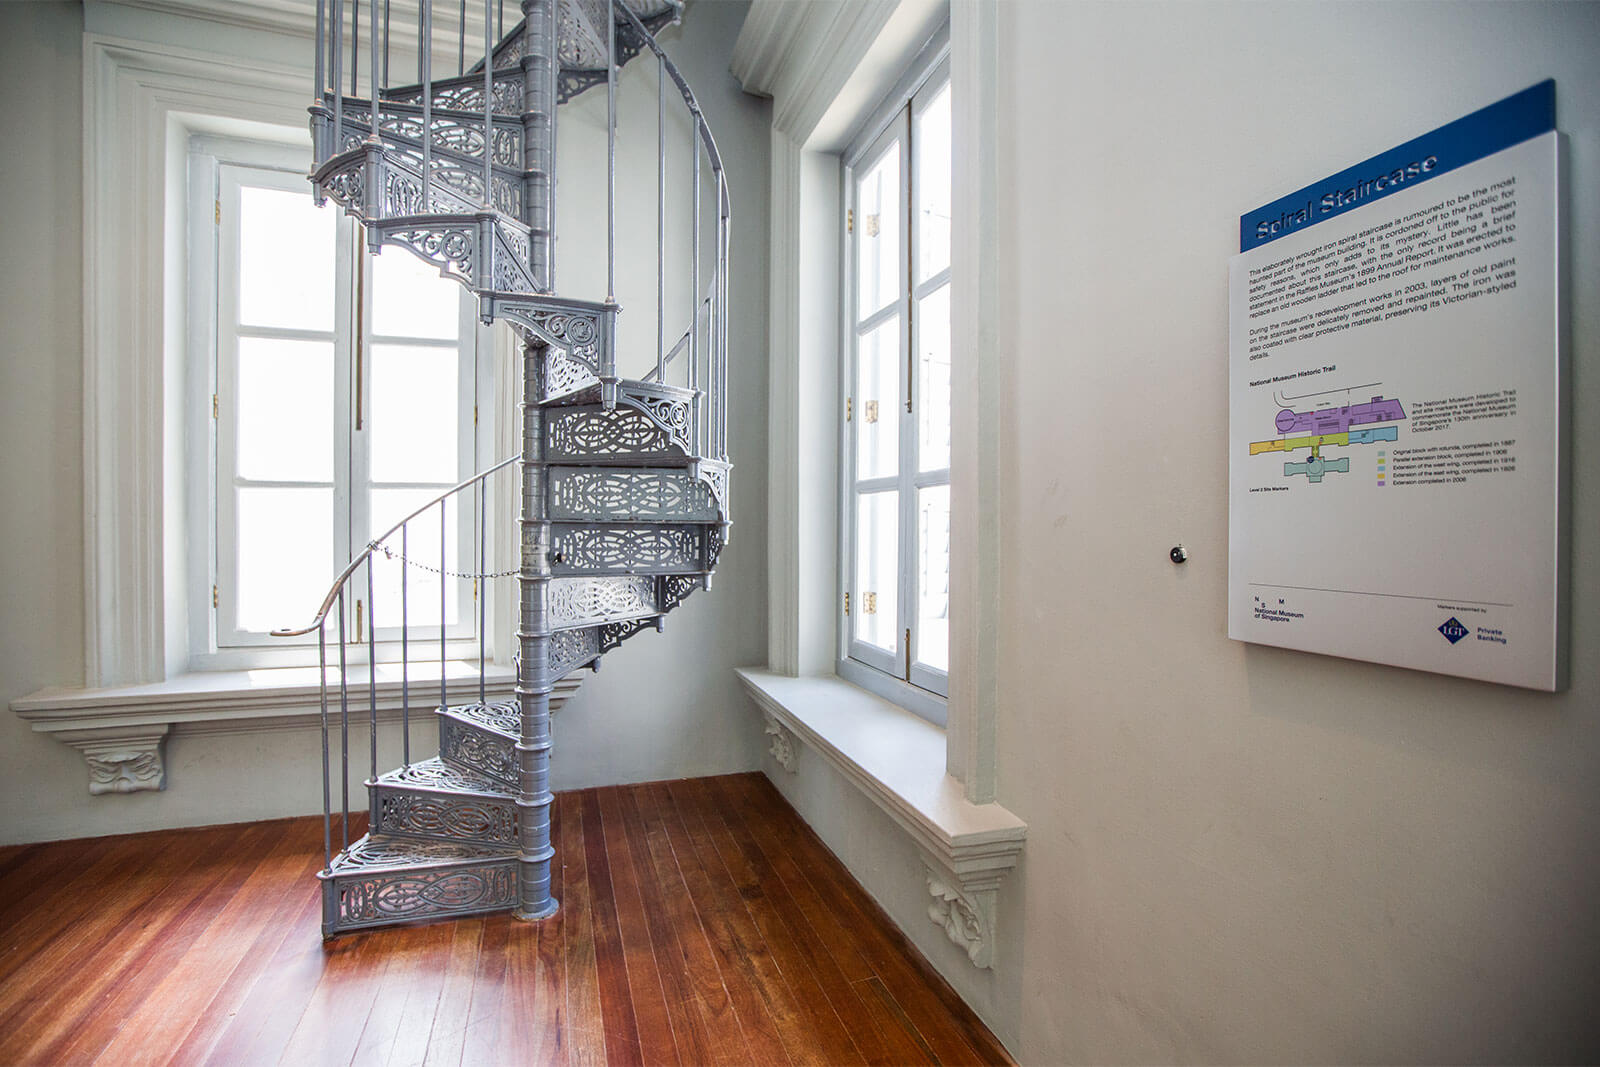 haunted spiral stair case in National Museum of Singapore